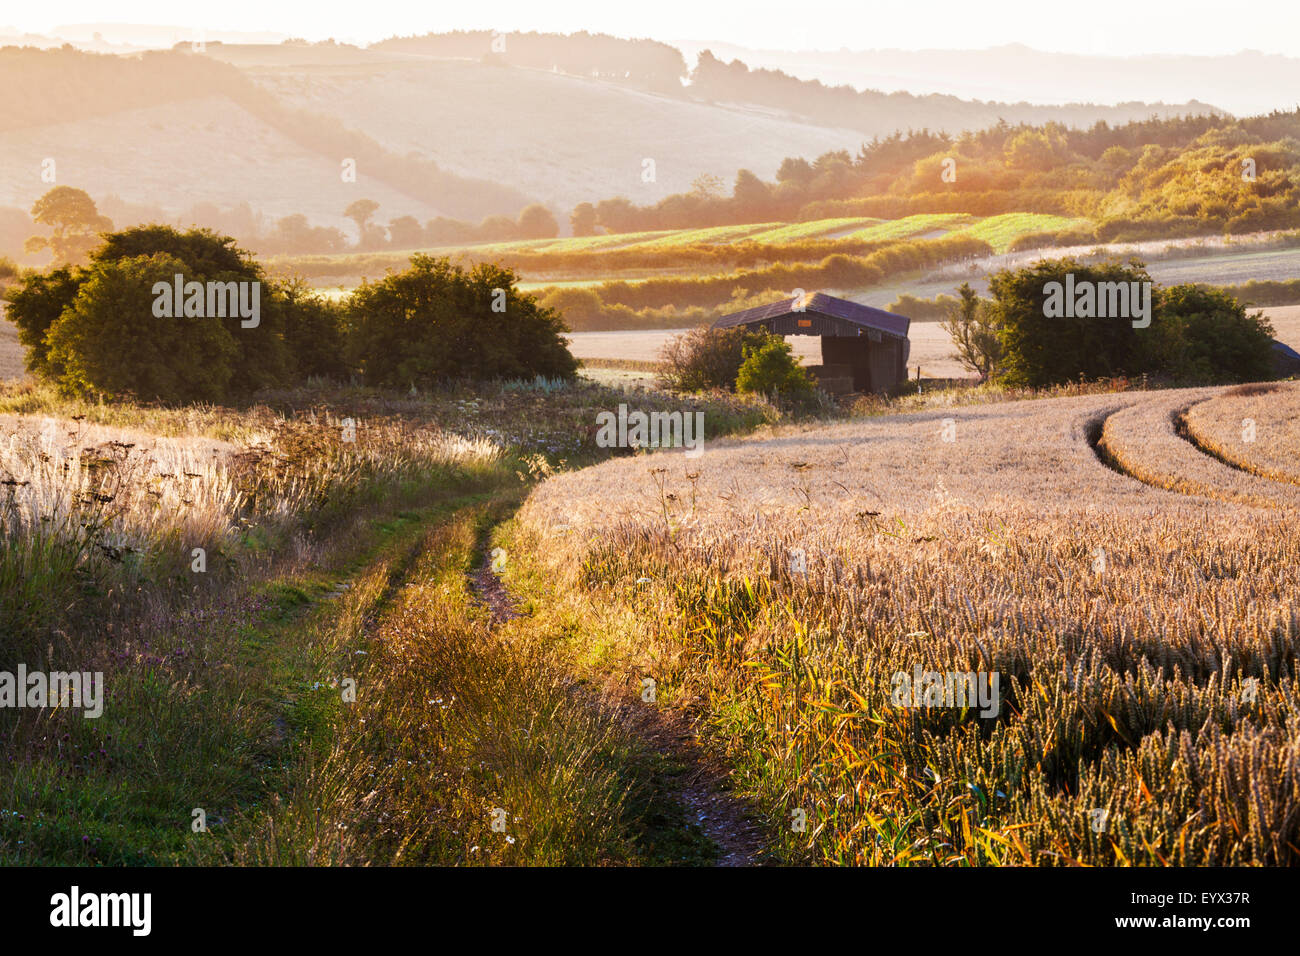 View over wheat field and barn from the Ridgeway in Wiltshire. - Stock Image